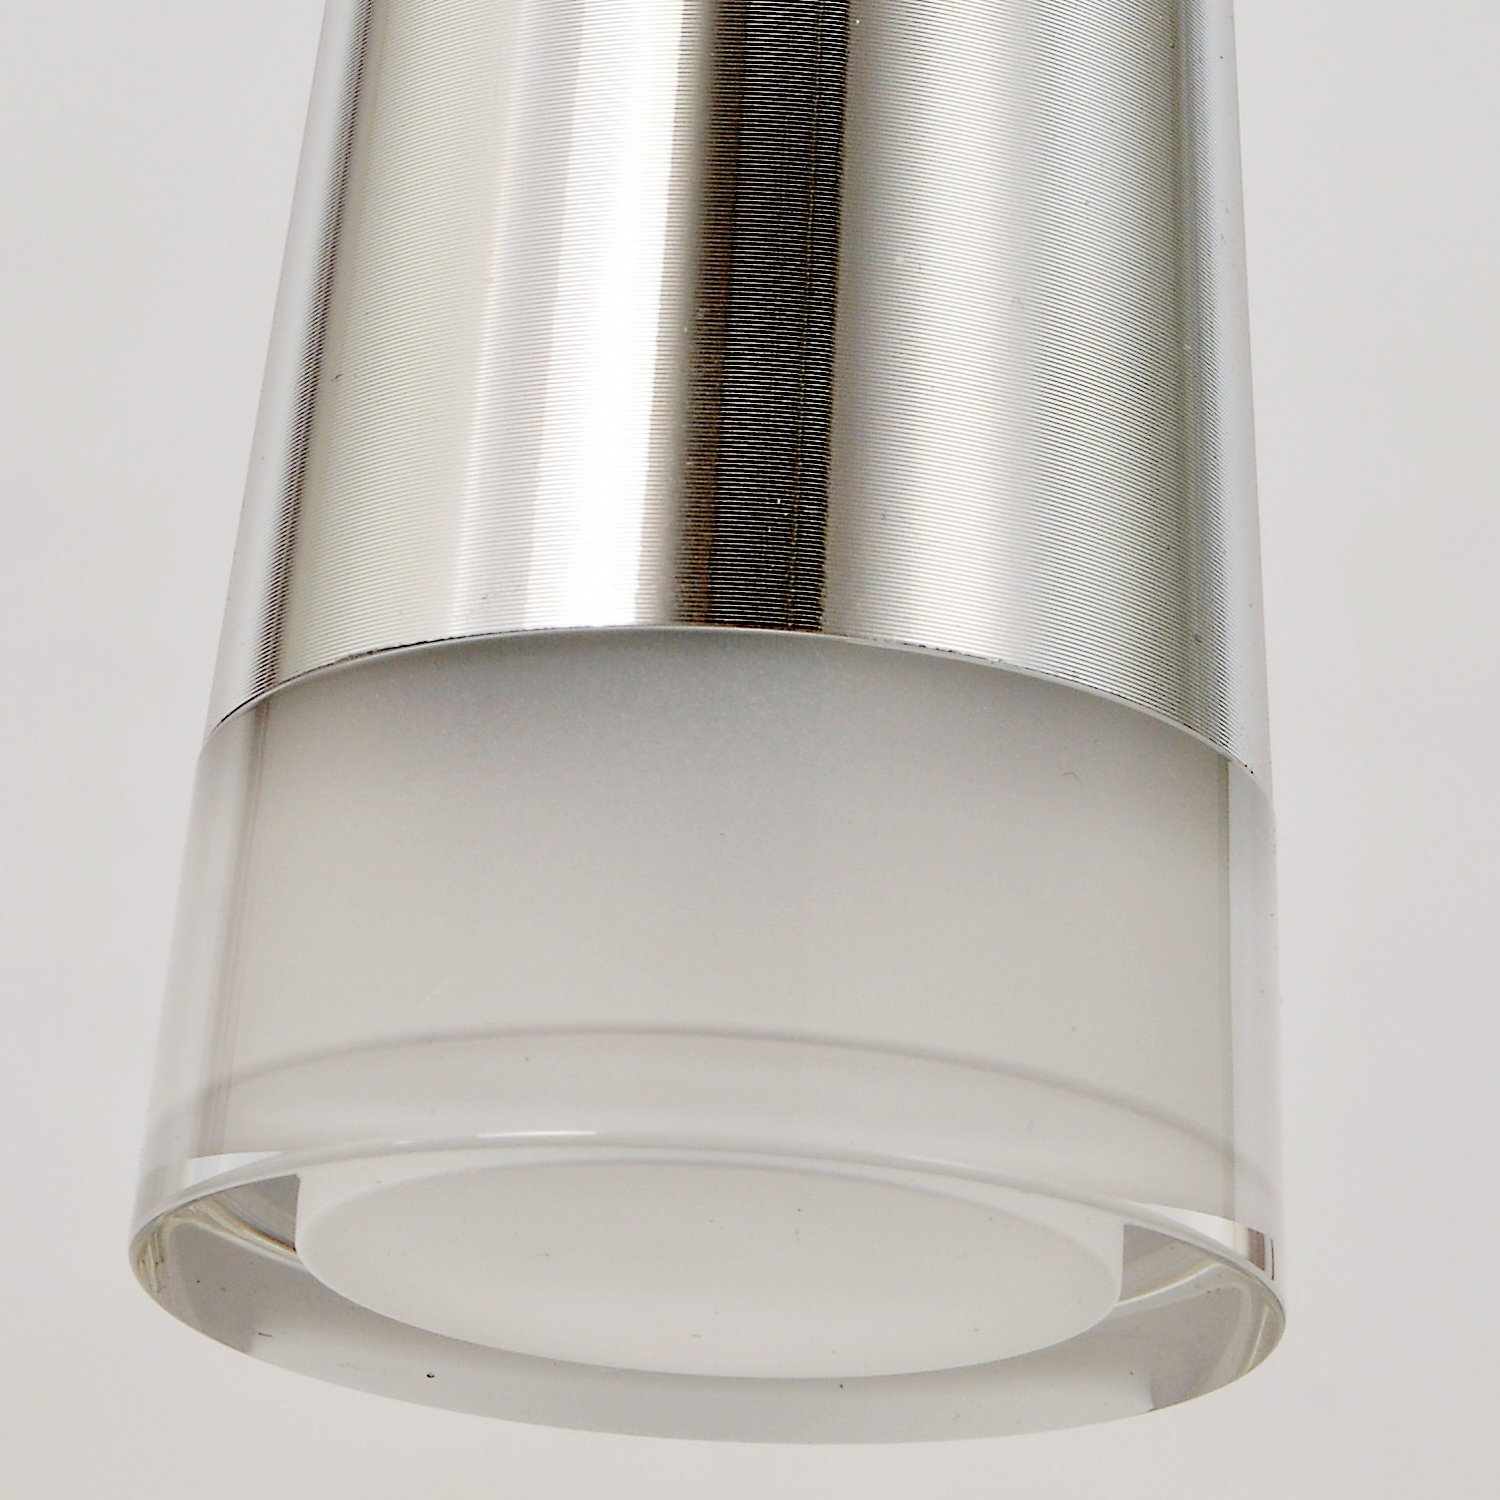 Unitary Brand Modern Nature White LED Acrylic Pendant Light Max 5w Plating Finish by Unitary (Image #5)